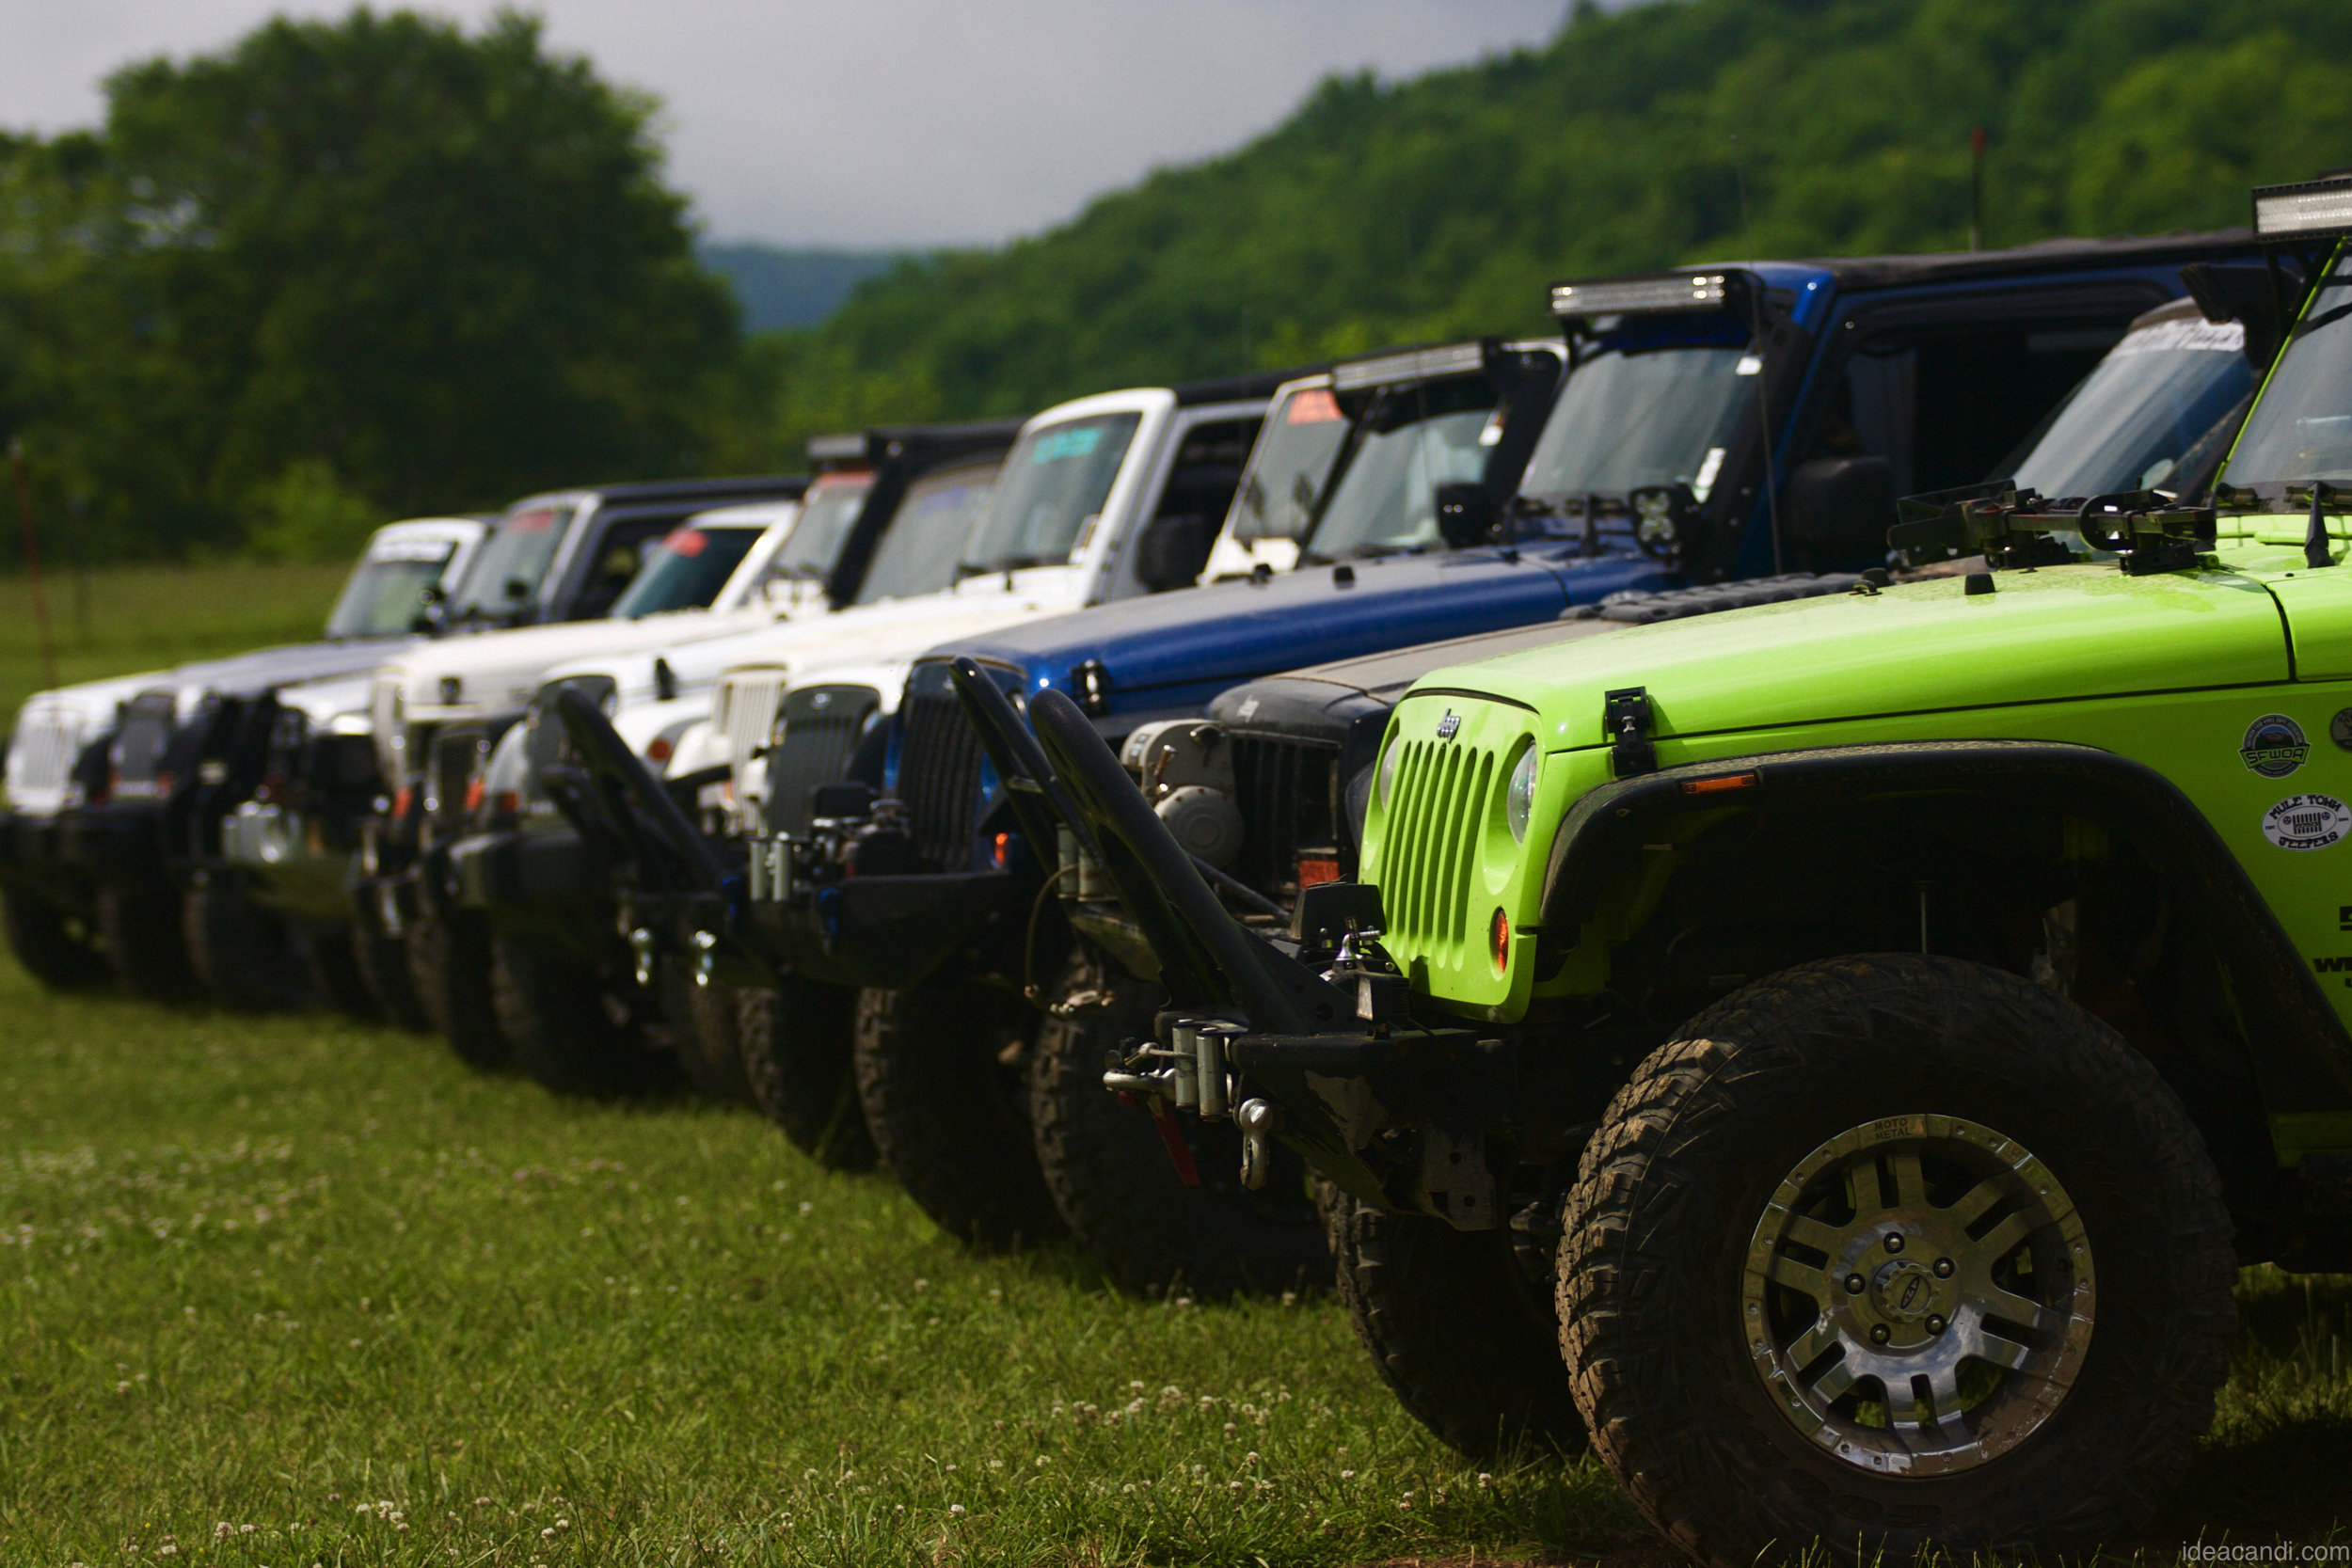 All prices are per vehicle and include 120+ trails over 1,000+ acres of guided trails, and off-road family festival fun!